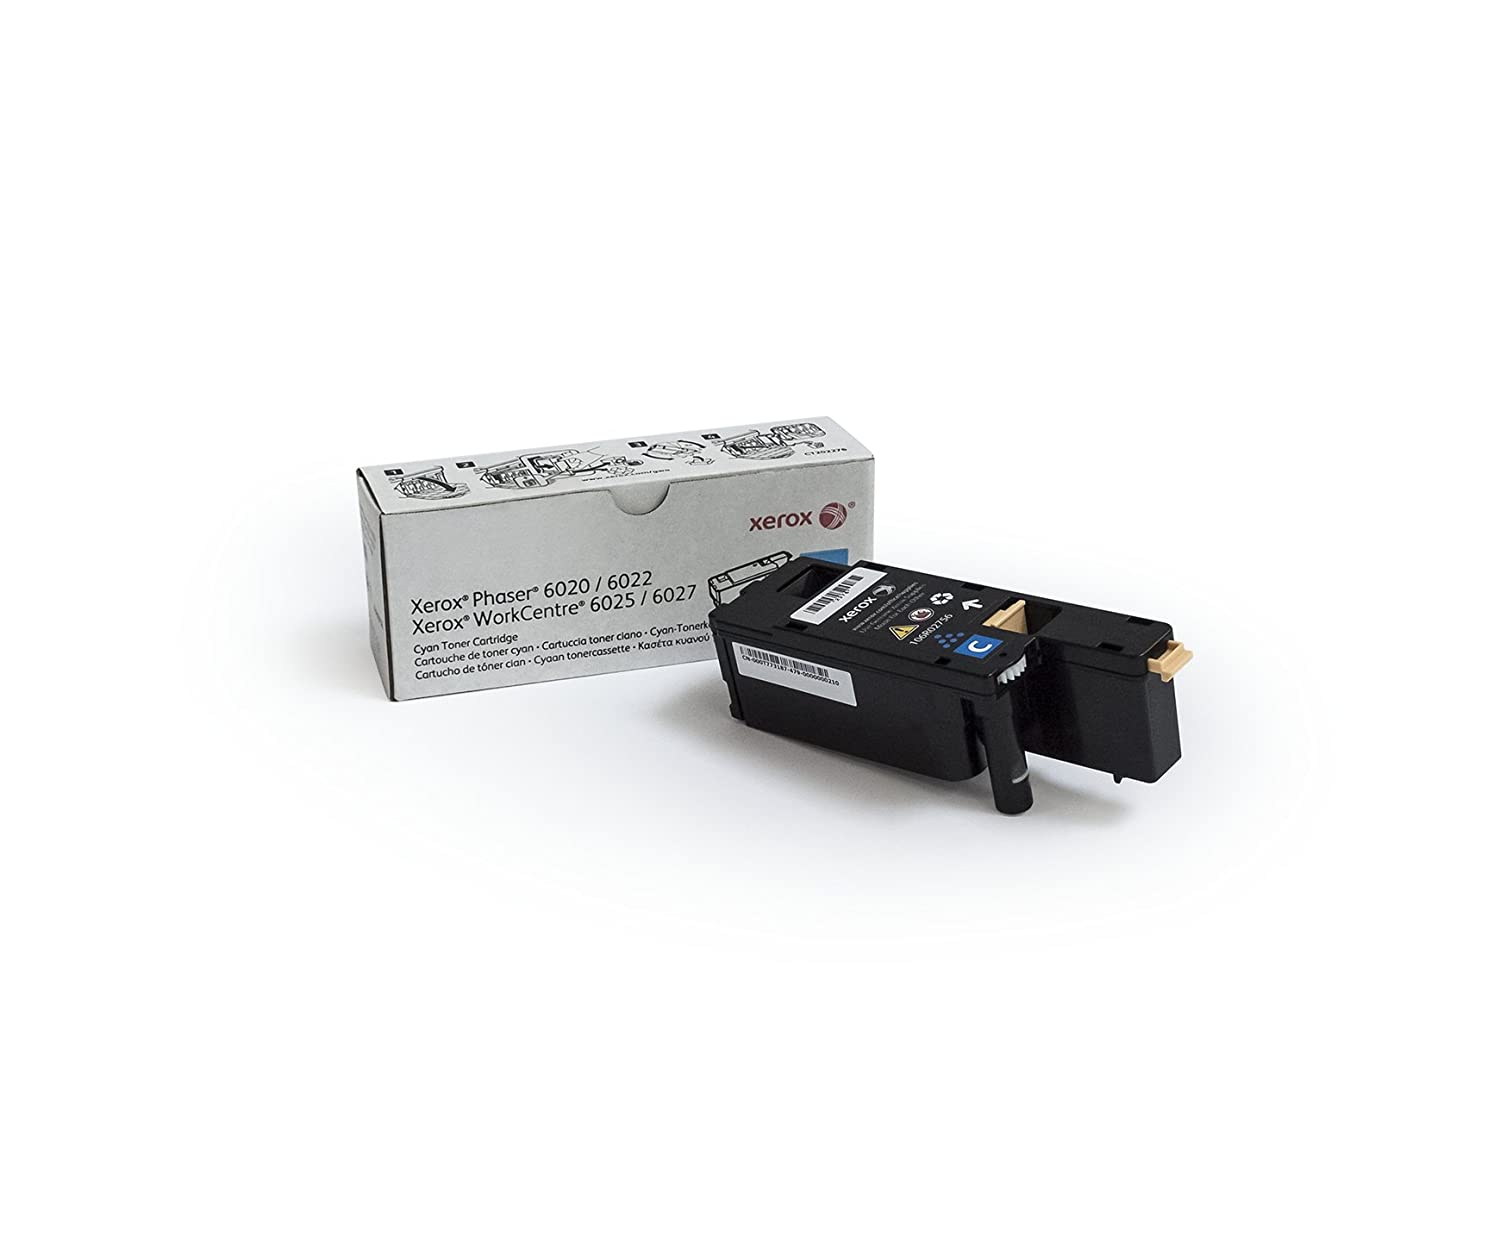 Genuine Xerox Magenta Toner for the Phaser 6022 or WorkCentre 6027, 106R02757